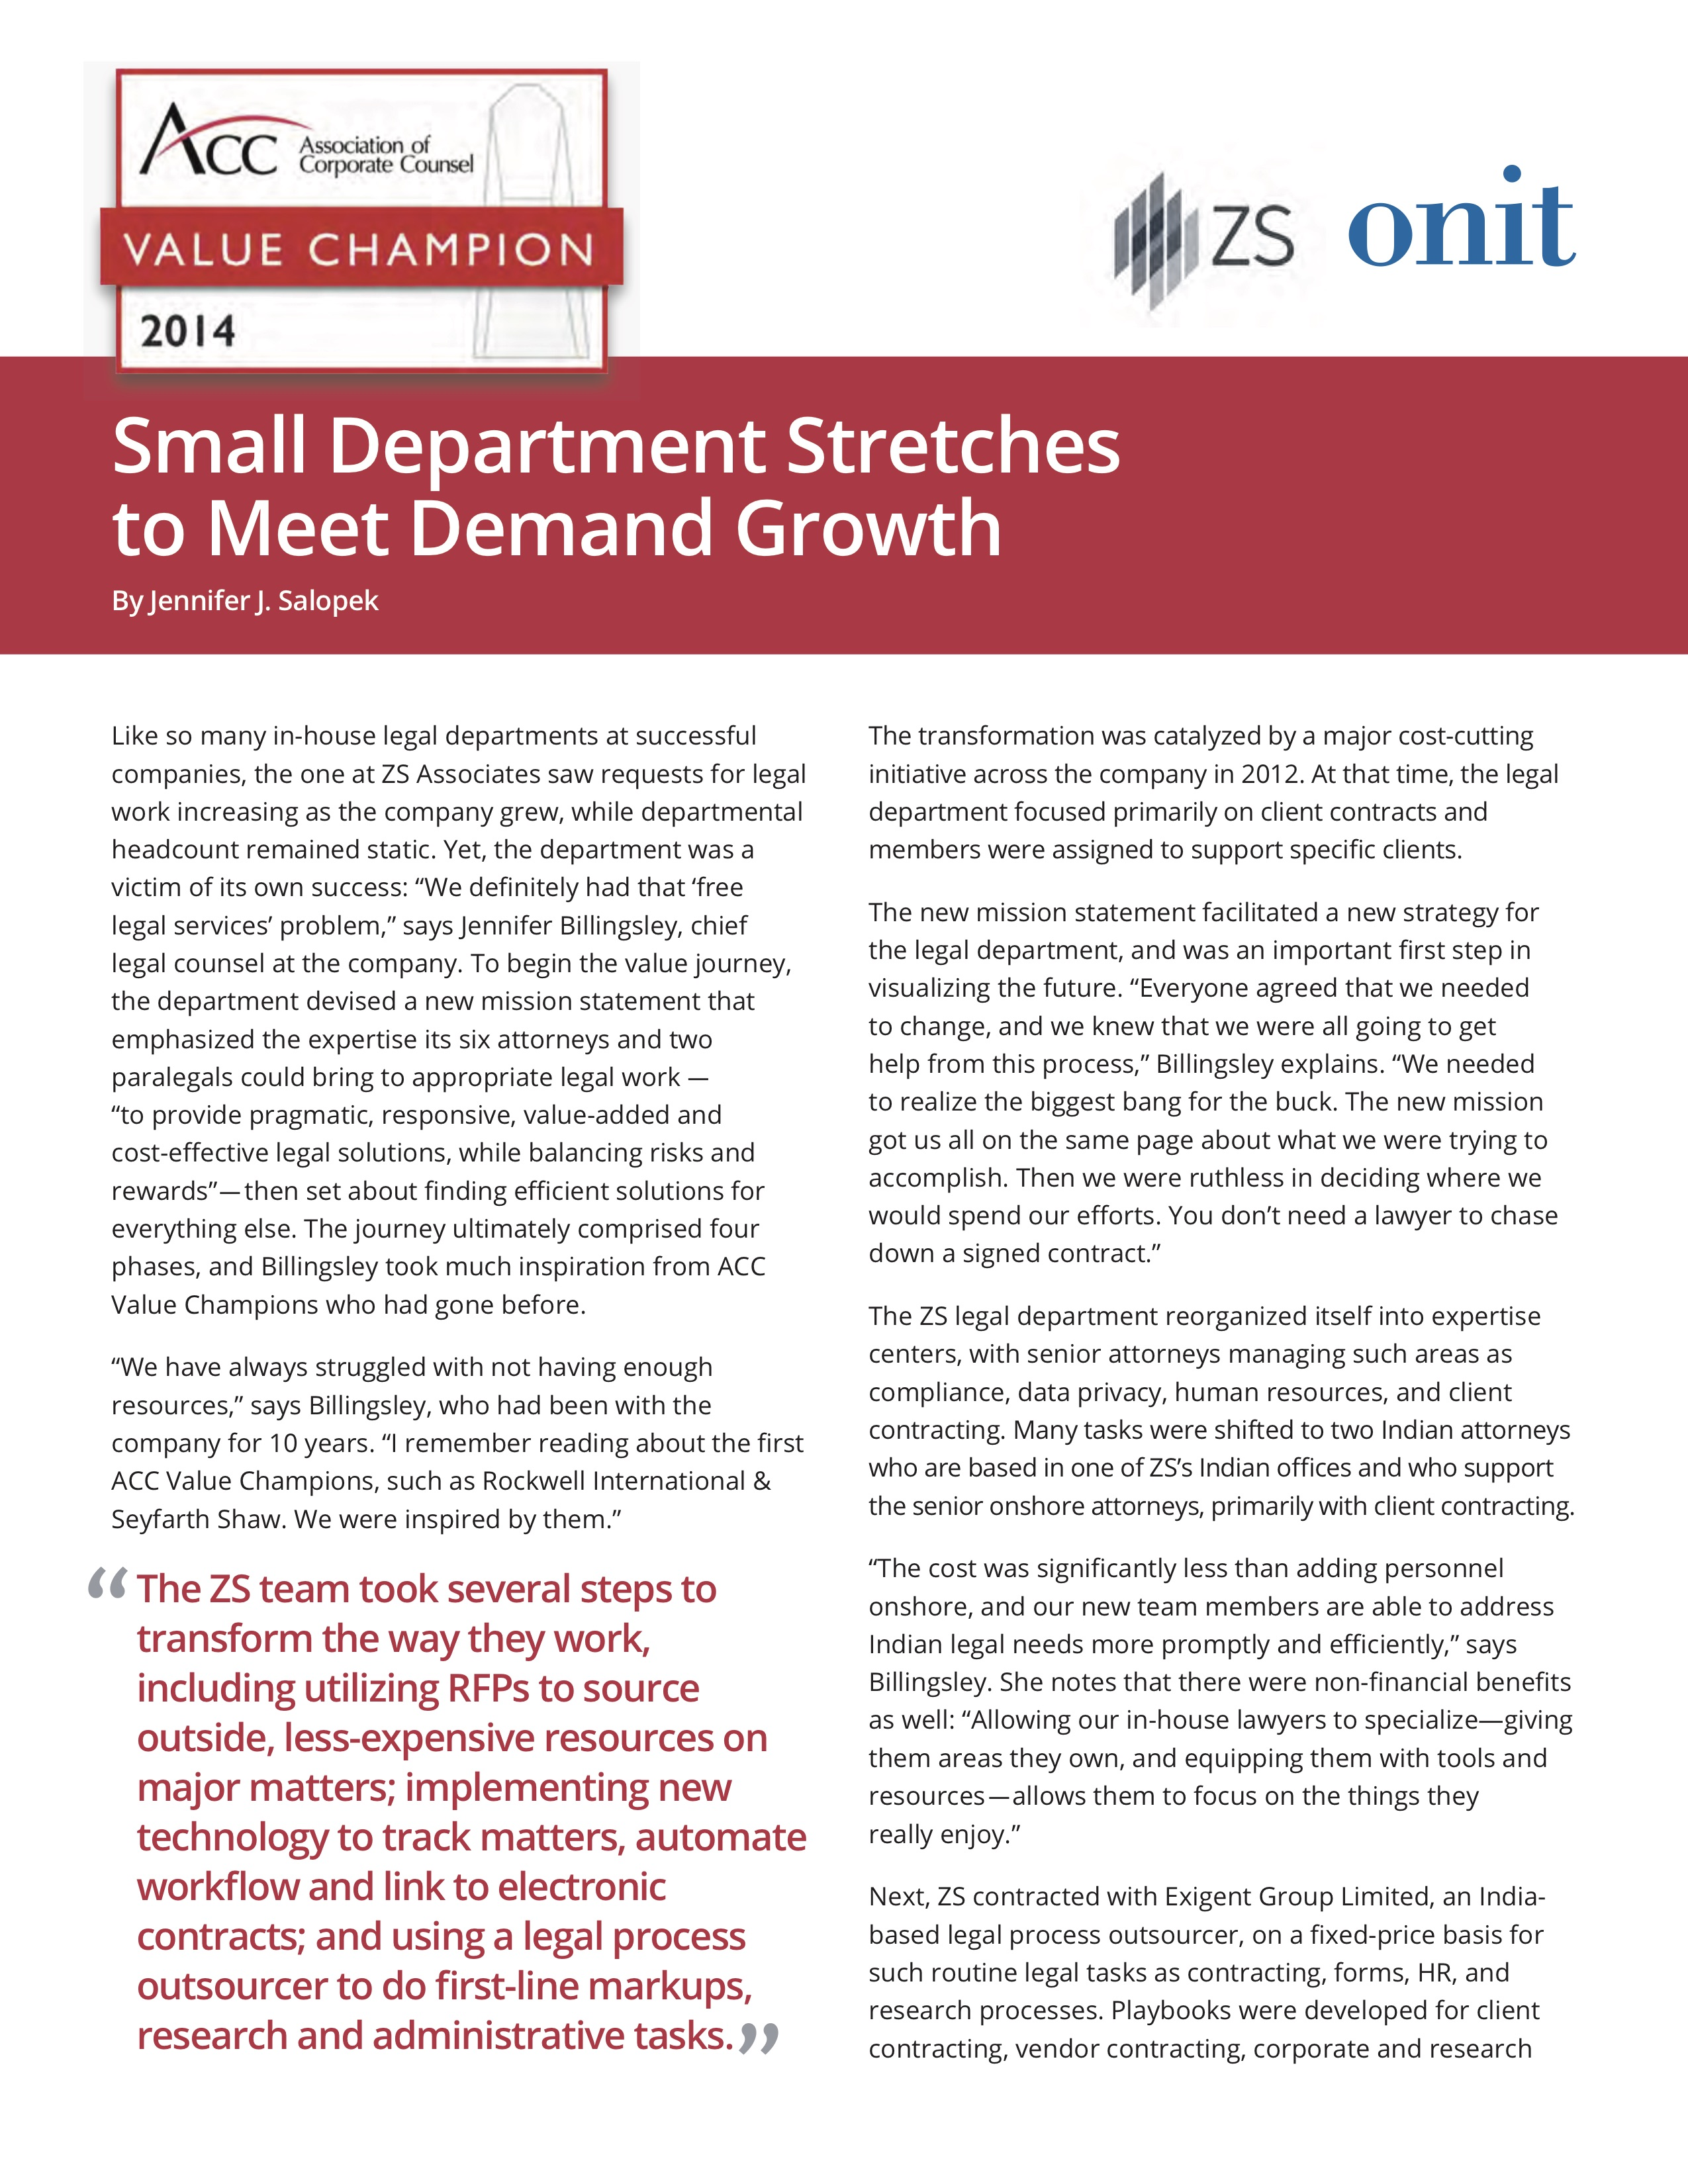 Small Department Stretches to Meet Demand Growth